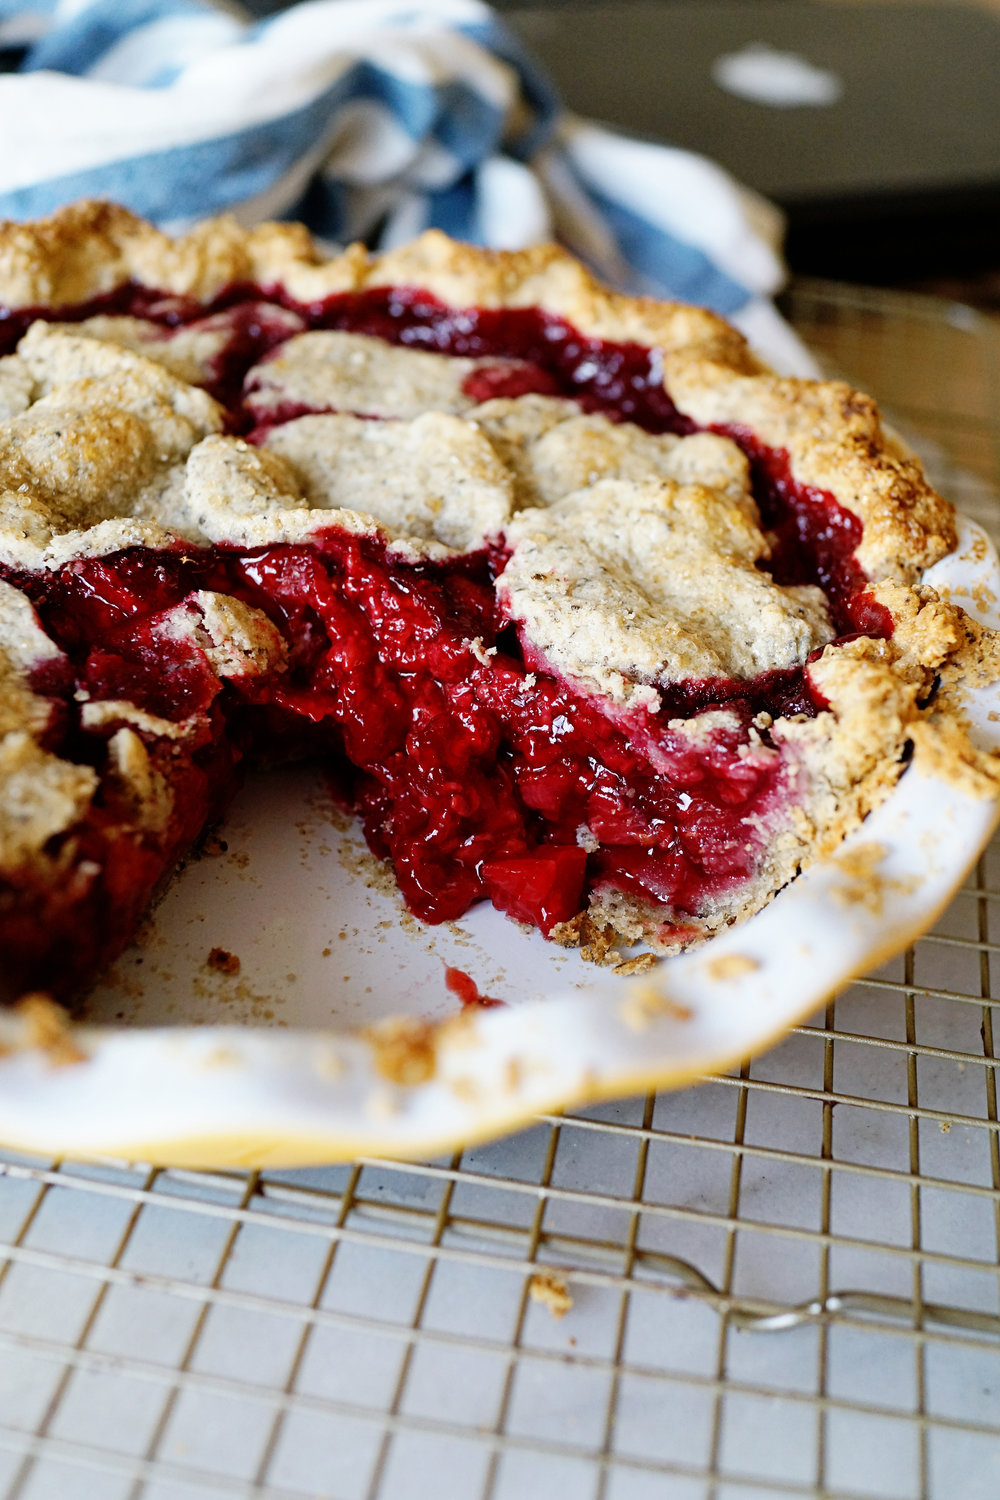 Recipe: Gluten Free Strawberry Raspberry Rhubarb Cutout Pie  /  www.goodonpaperdesign.com/blog/2016/10/4/recipe-gluten-free-strawberry-raspberry-cutout-pie  /  @good_on_paper